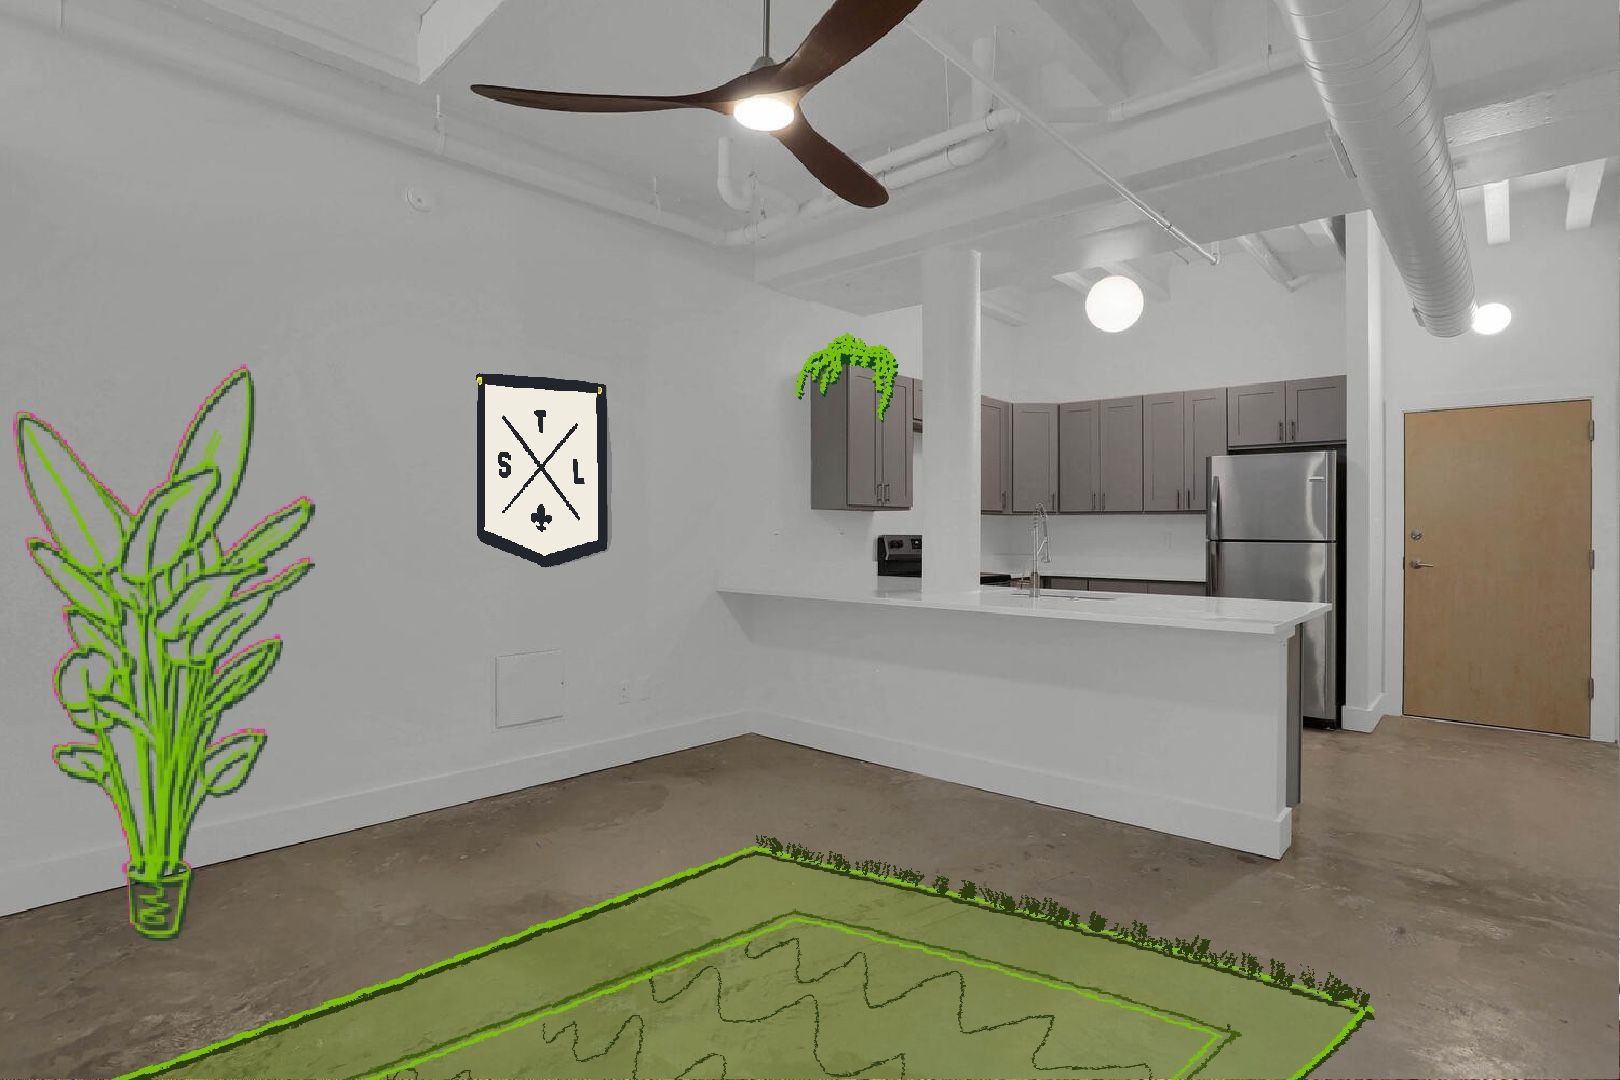 modern apartment with illustrations superimposed